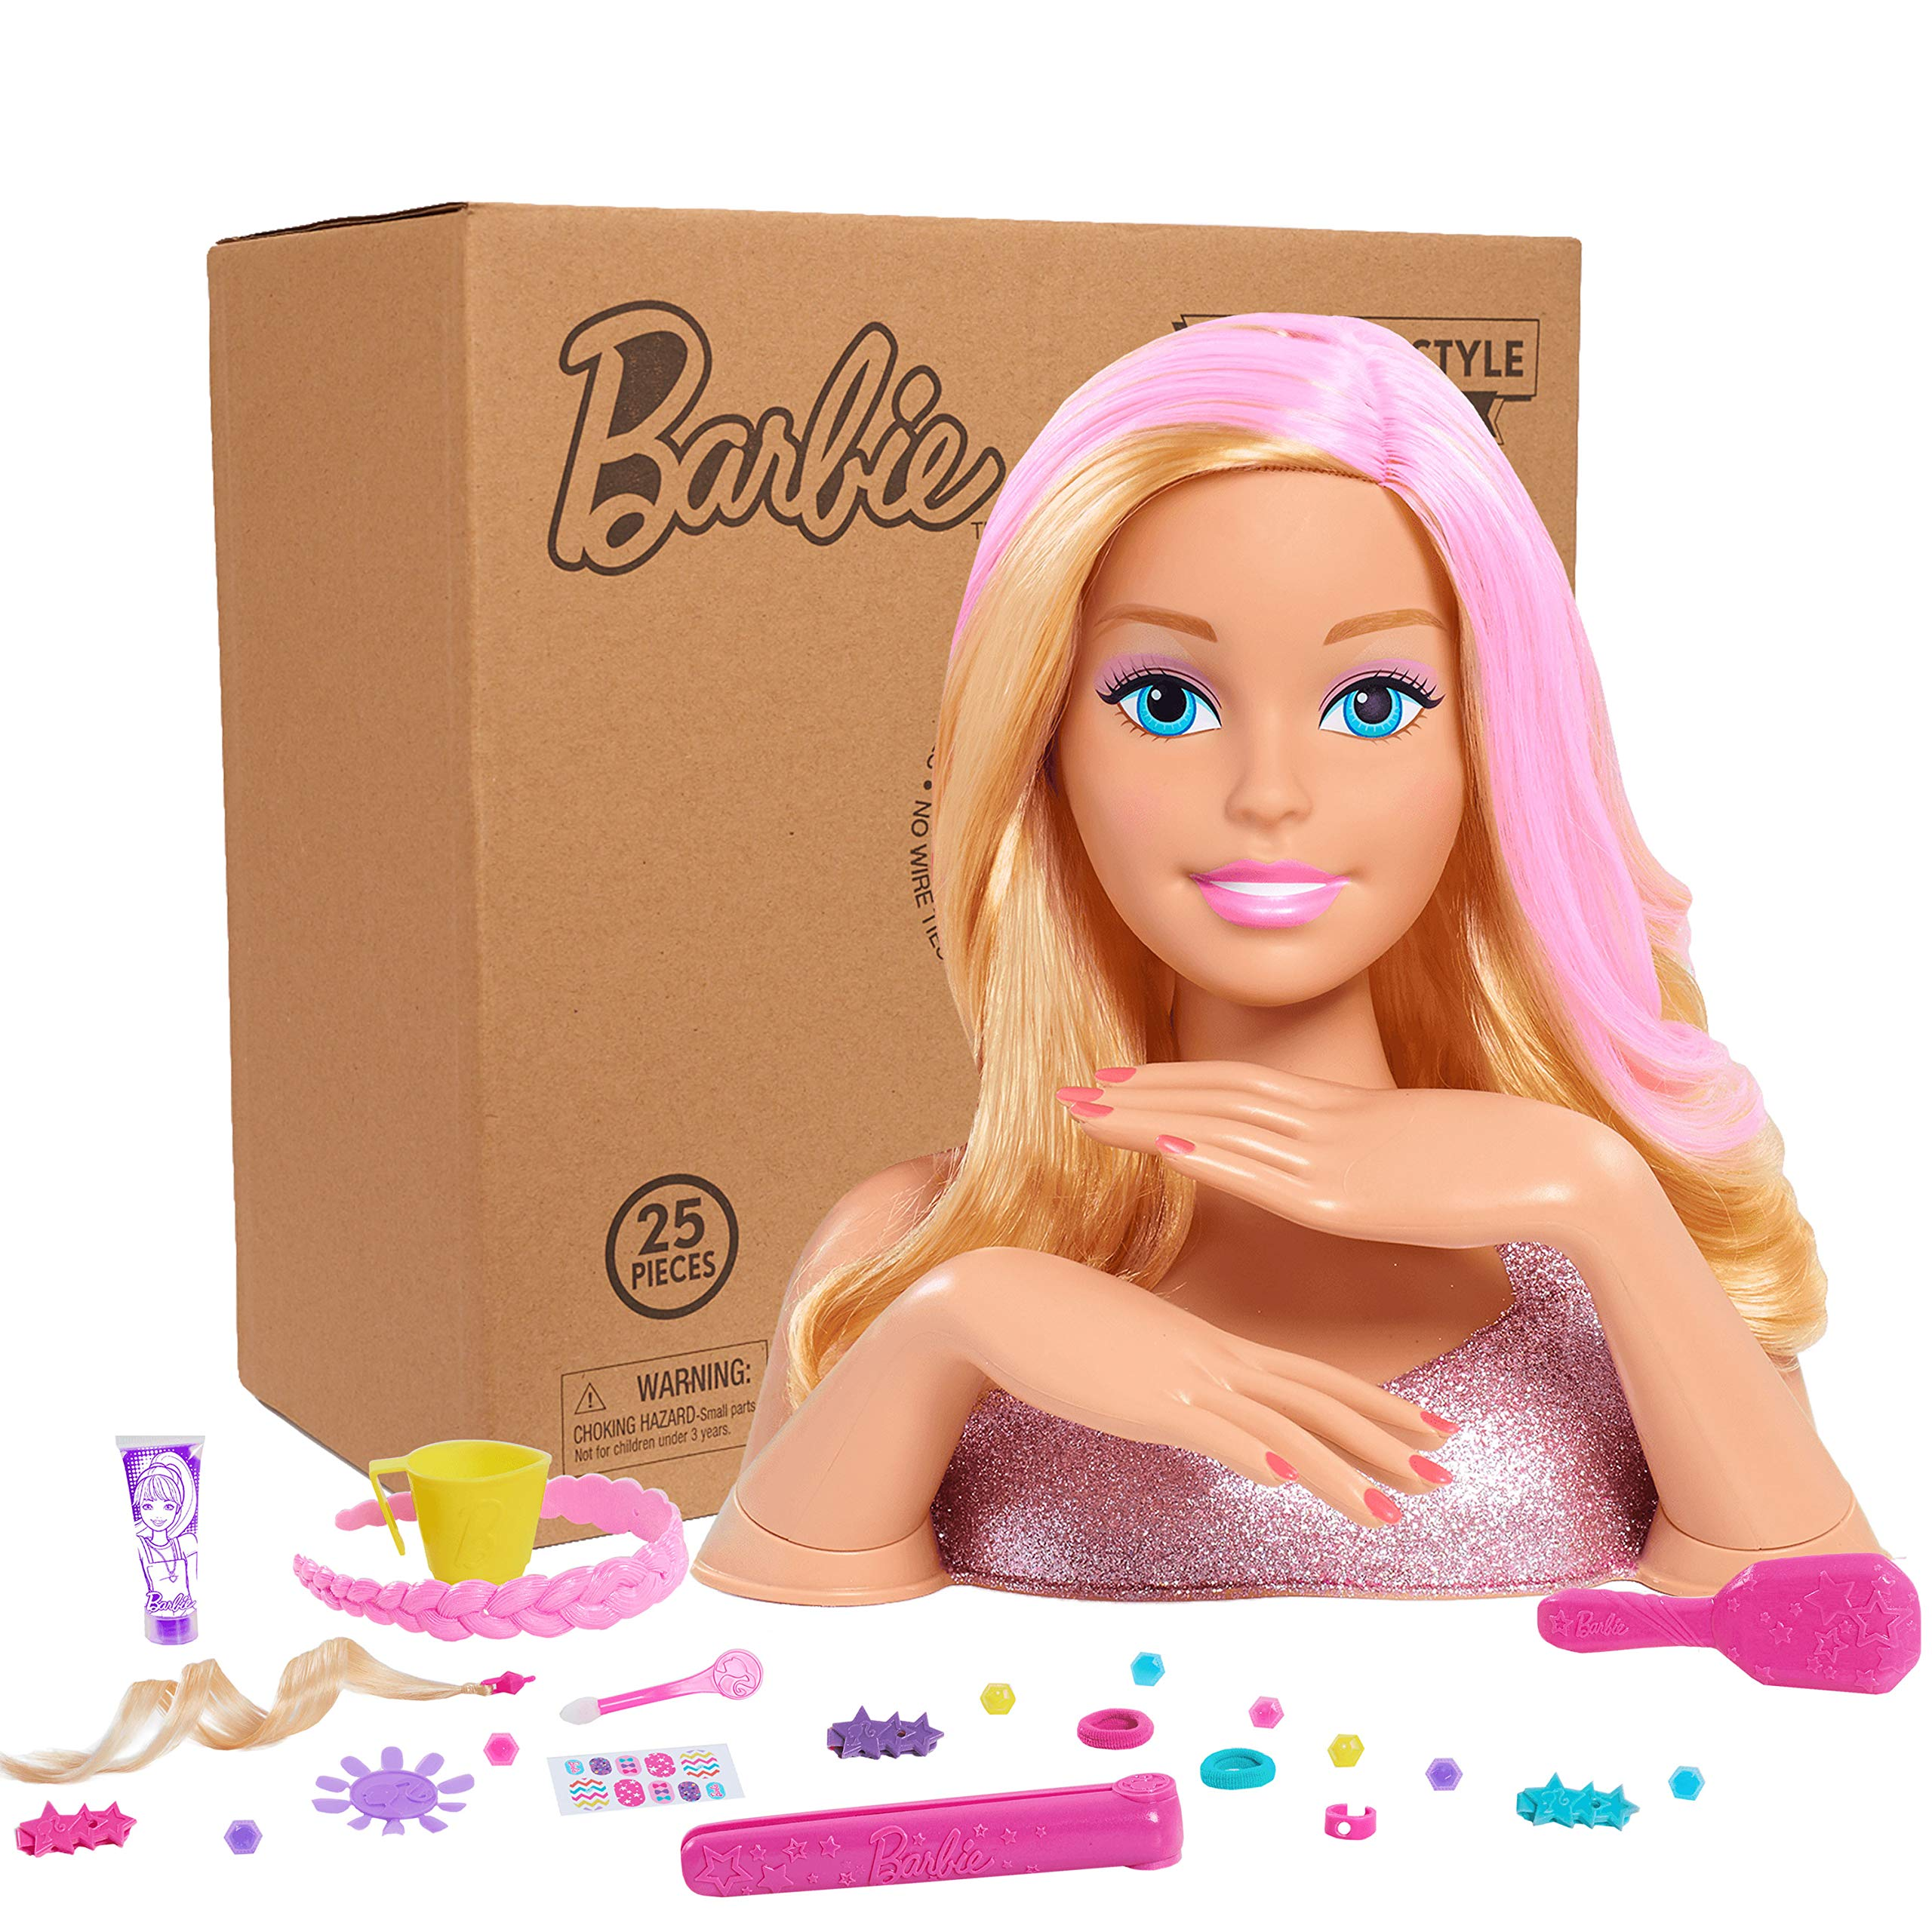 Barbie Deluxe Styling Head(Blonde)- Brown Mailer